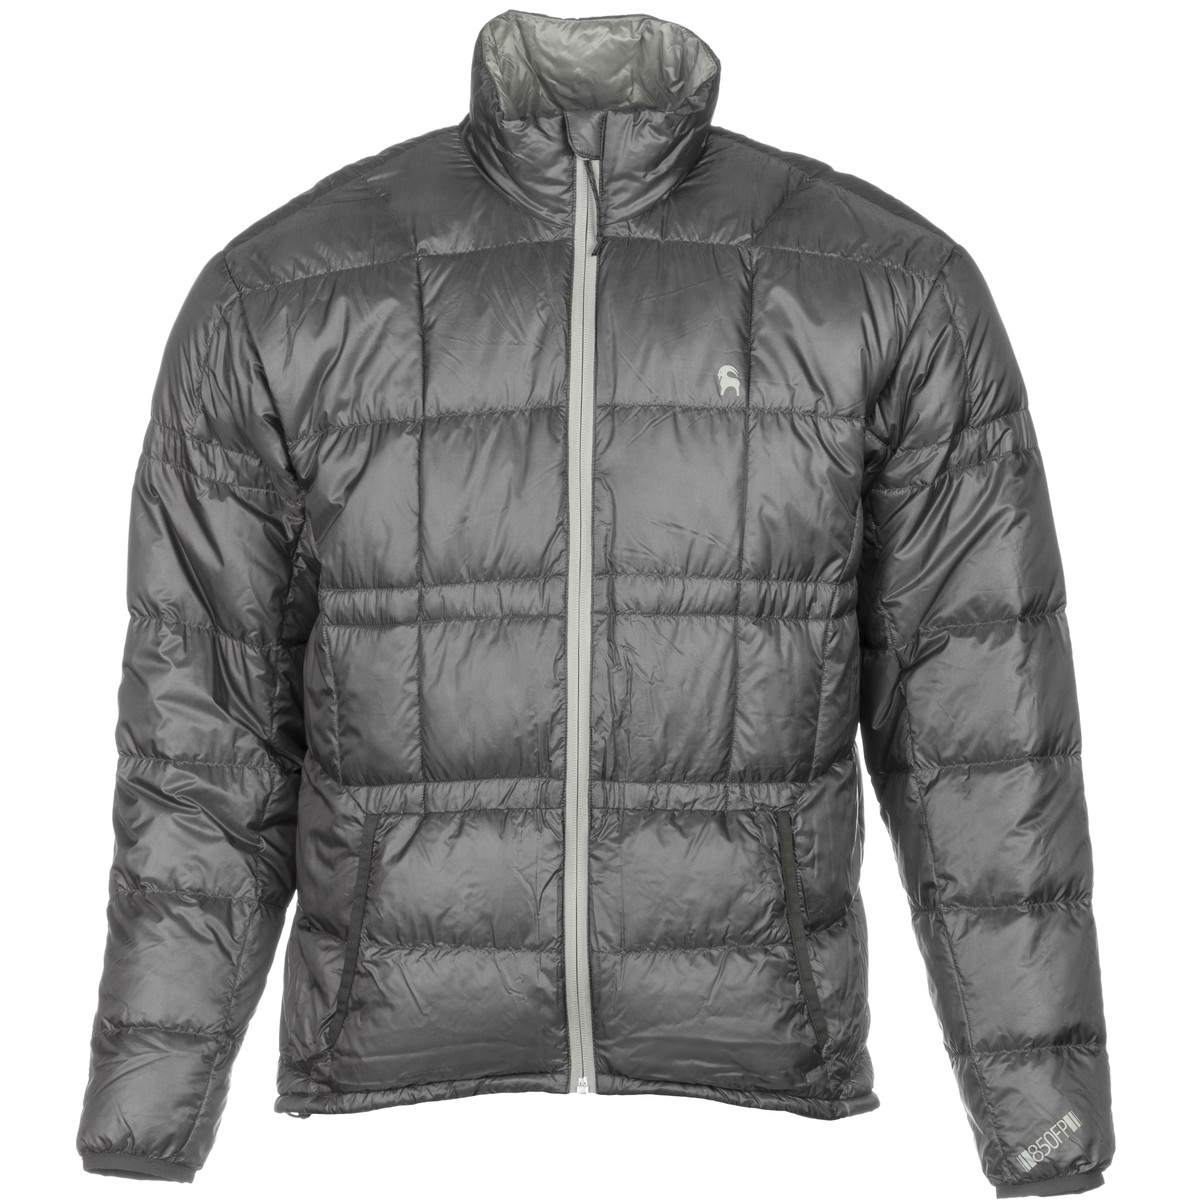 Backcountry.com Backcountry Hadron Down Jacket